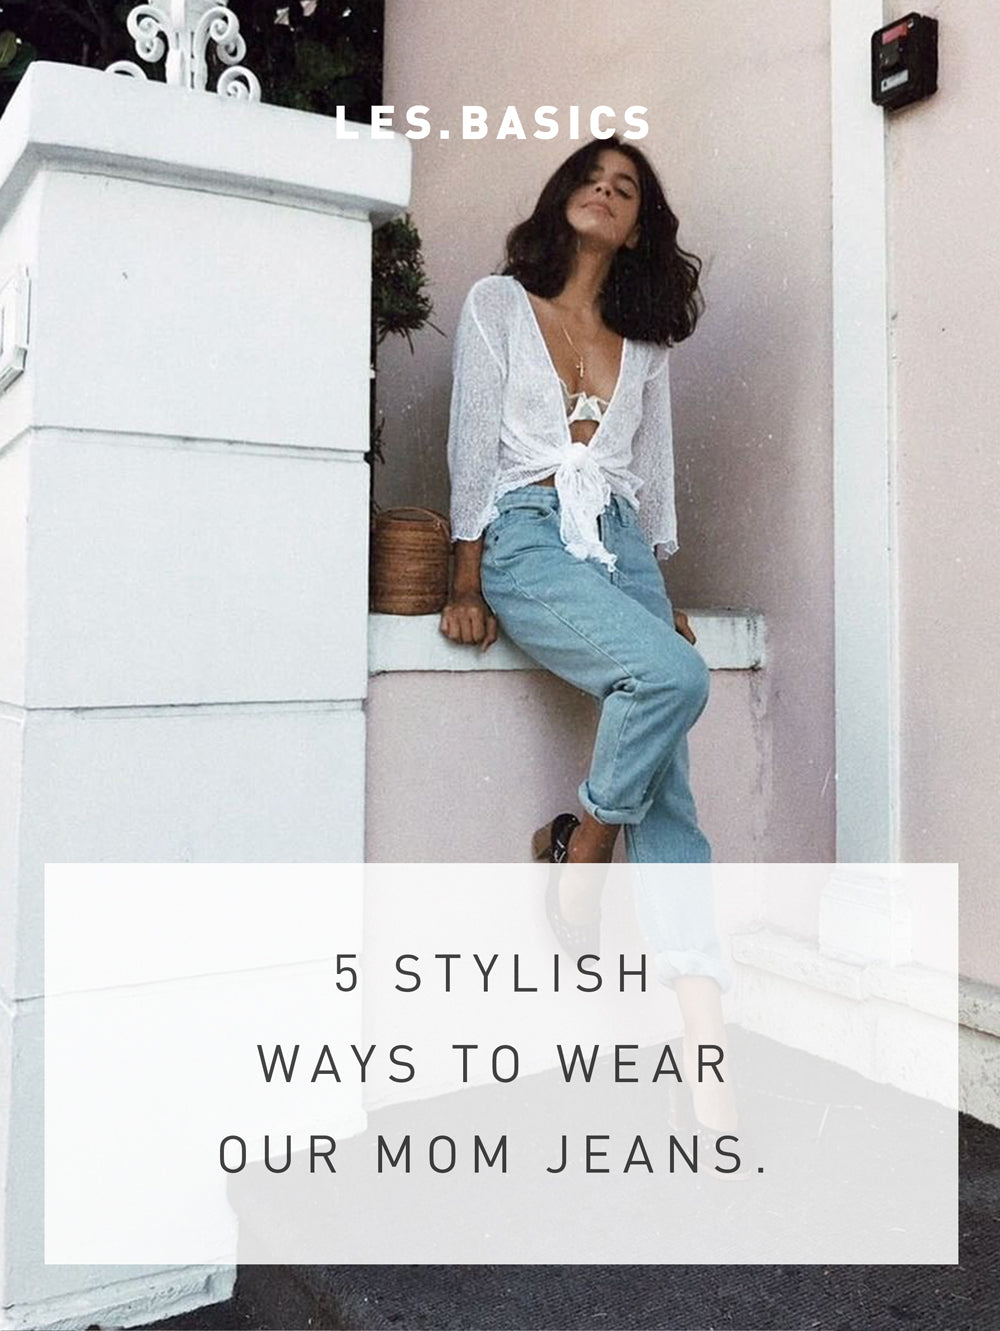 5 STYLISH WAYS HOW TO WEAR MOM JEANS